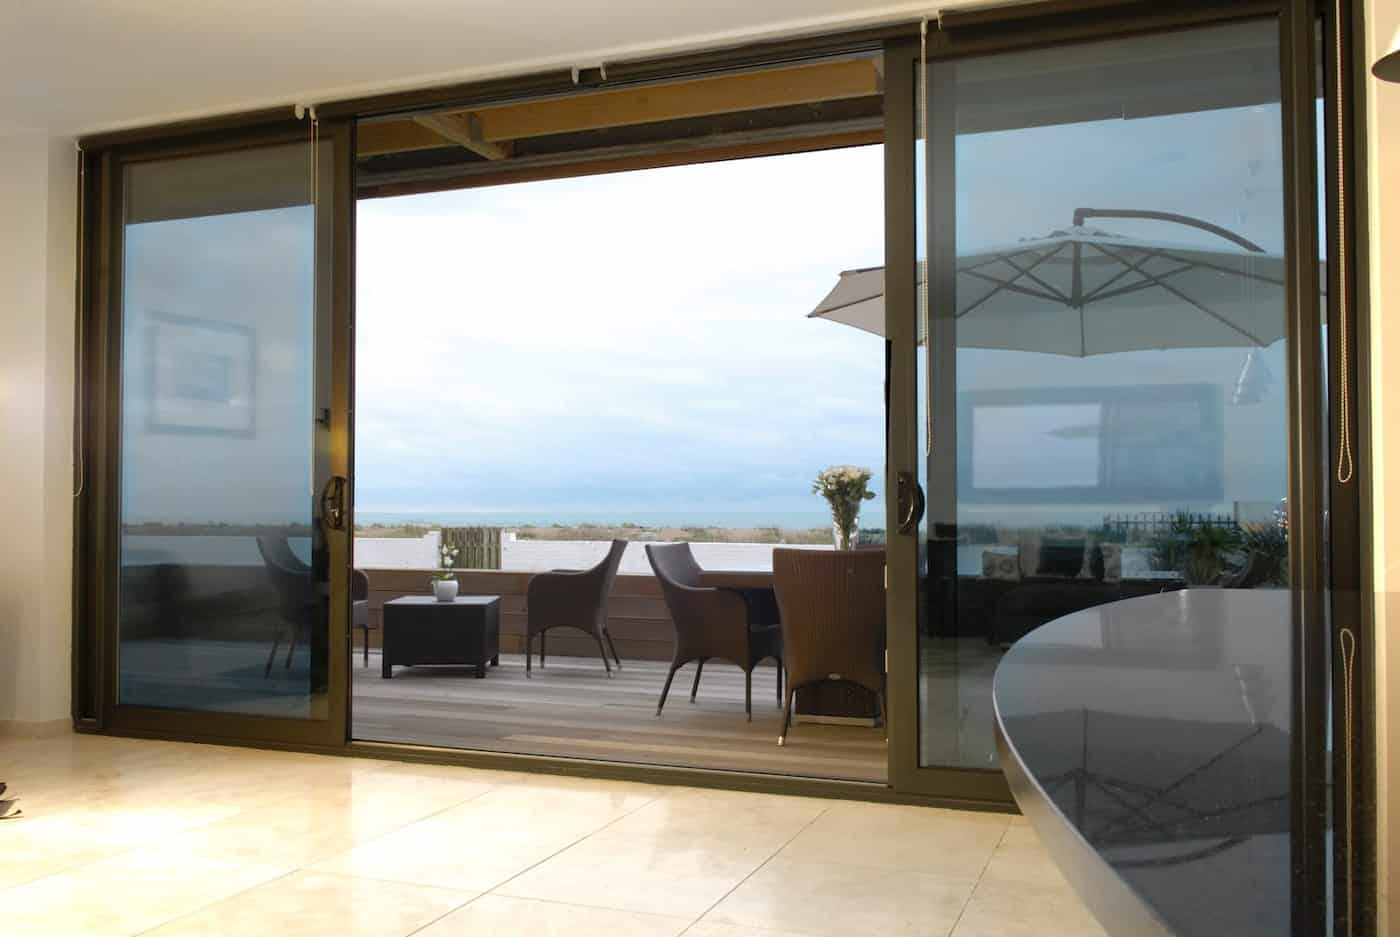 Bowalker aluminium widespan sliding doors in Sussex